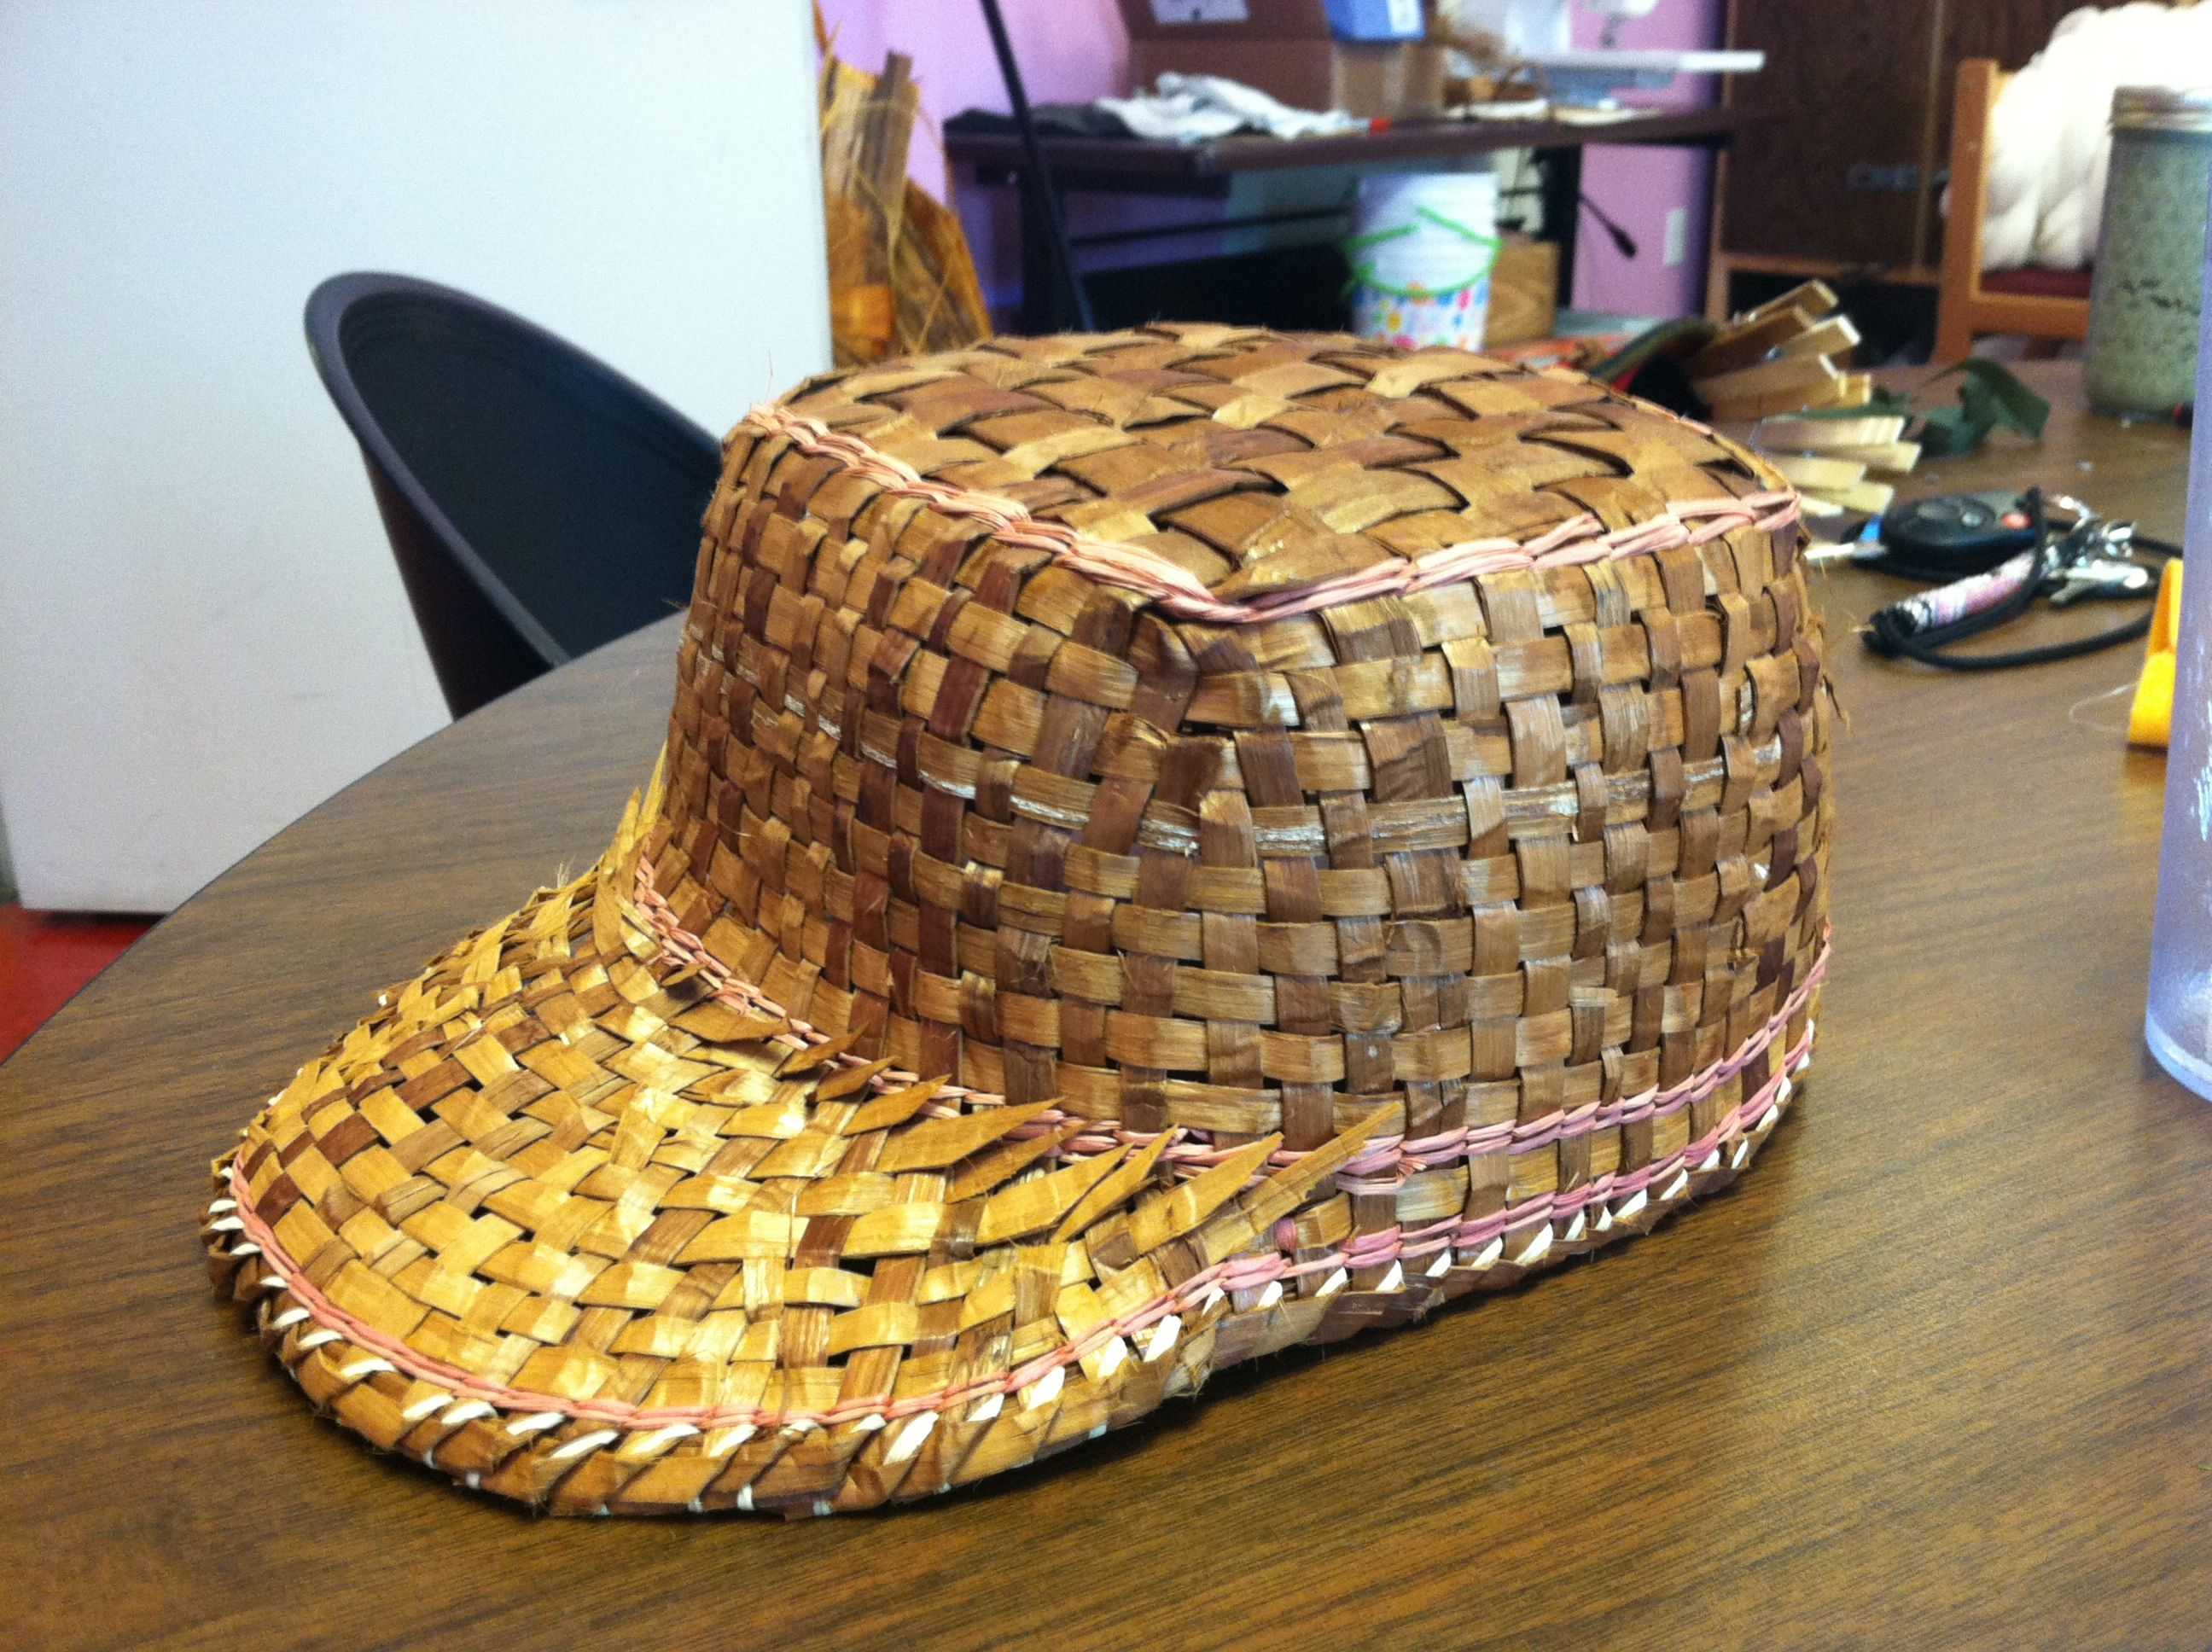 Basket Weaving With Raffia : Cedar weaving salish lummi baseball cap with pink raffia